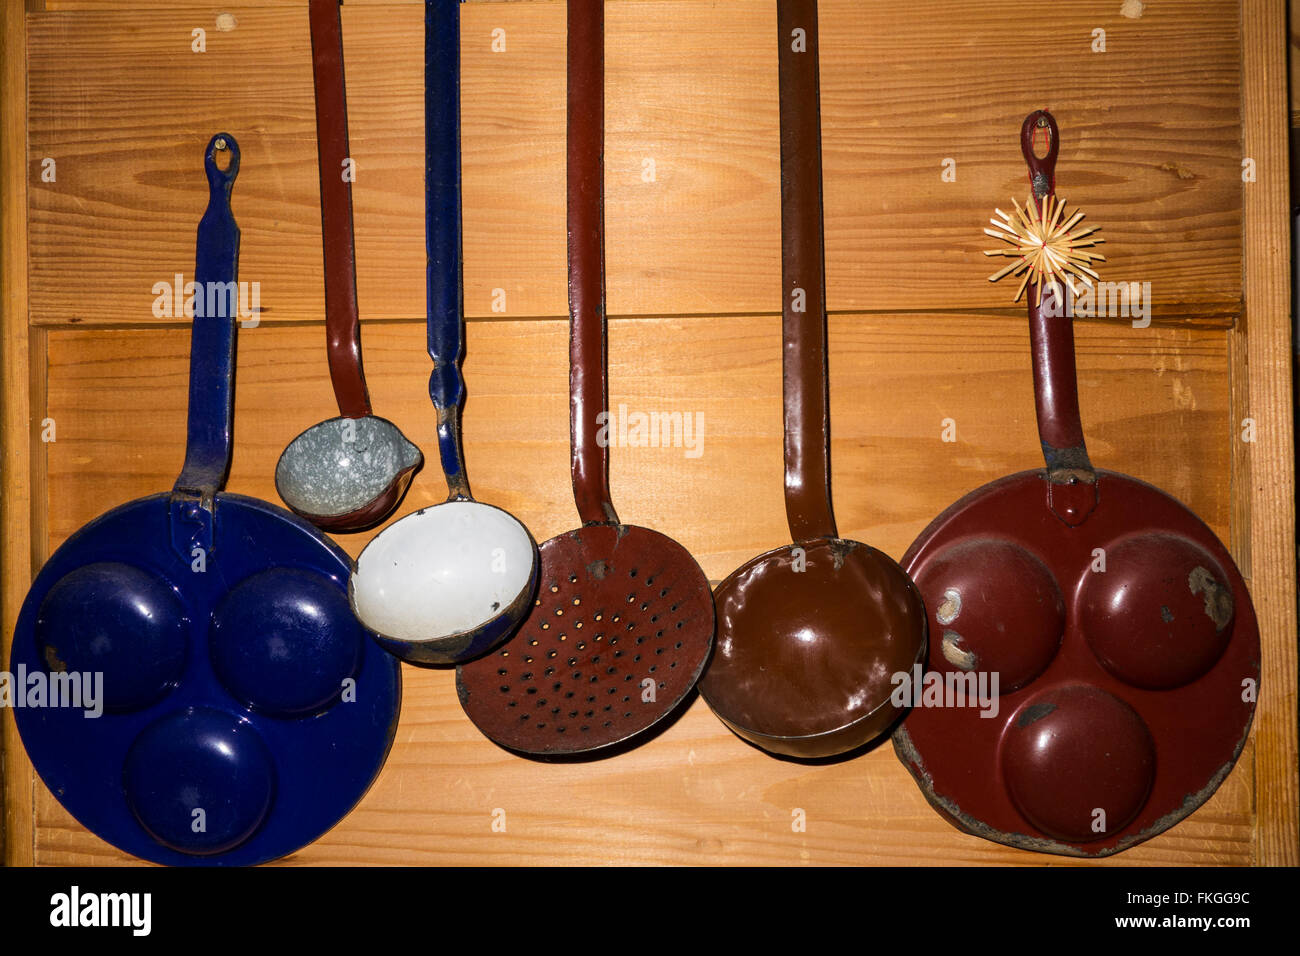 Ladles and pans on a kitchen wall - Stock Image